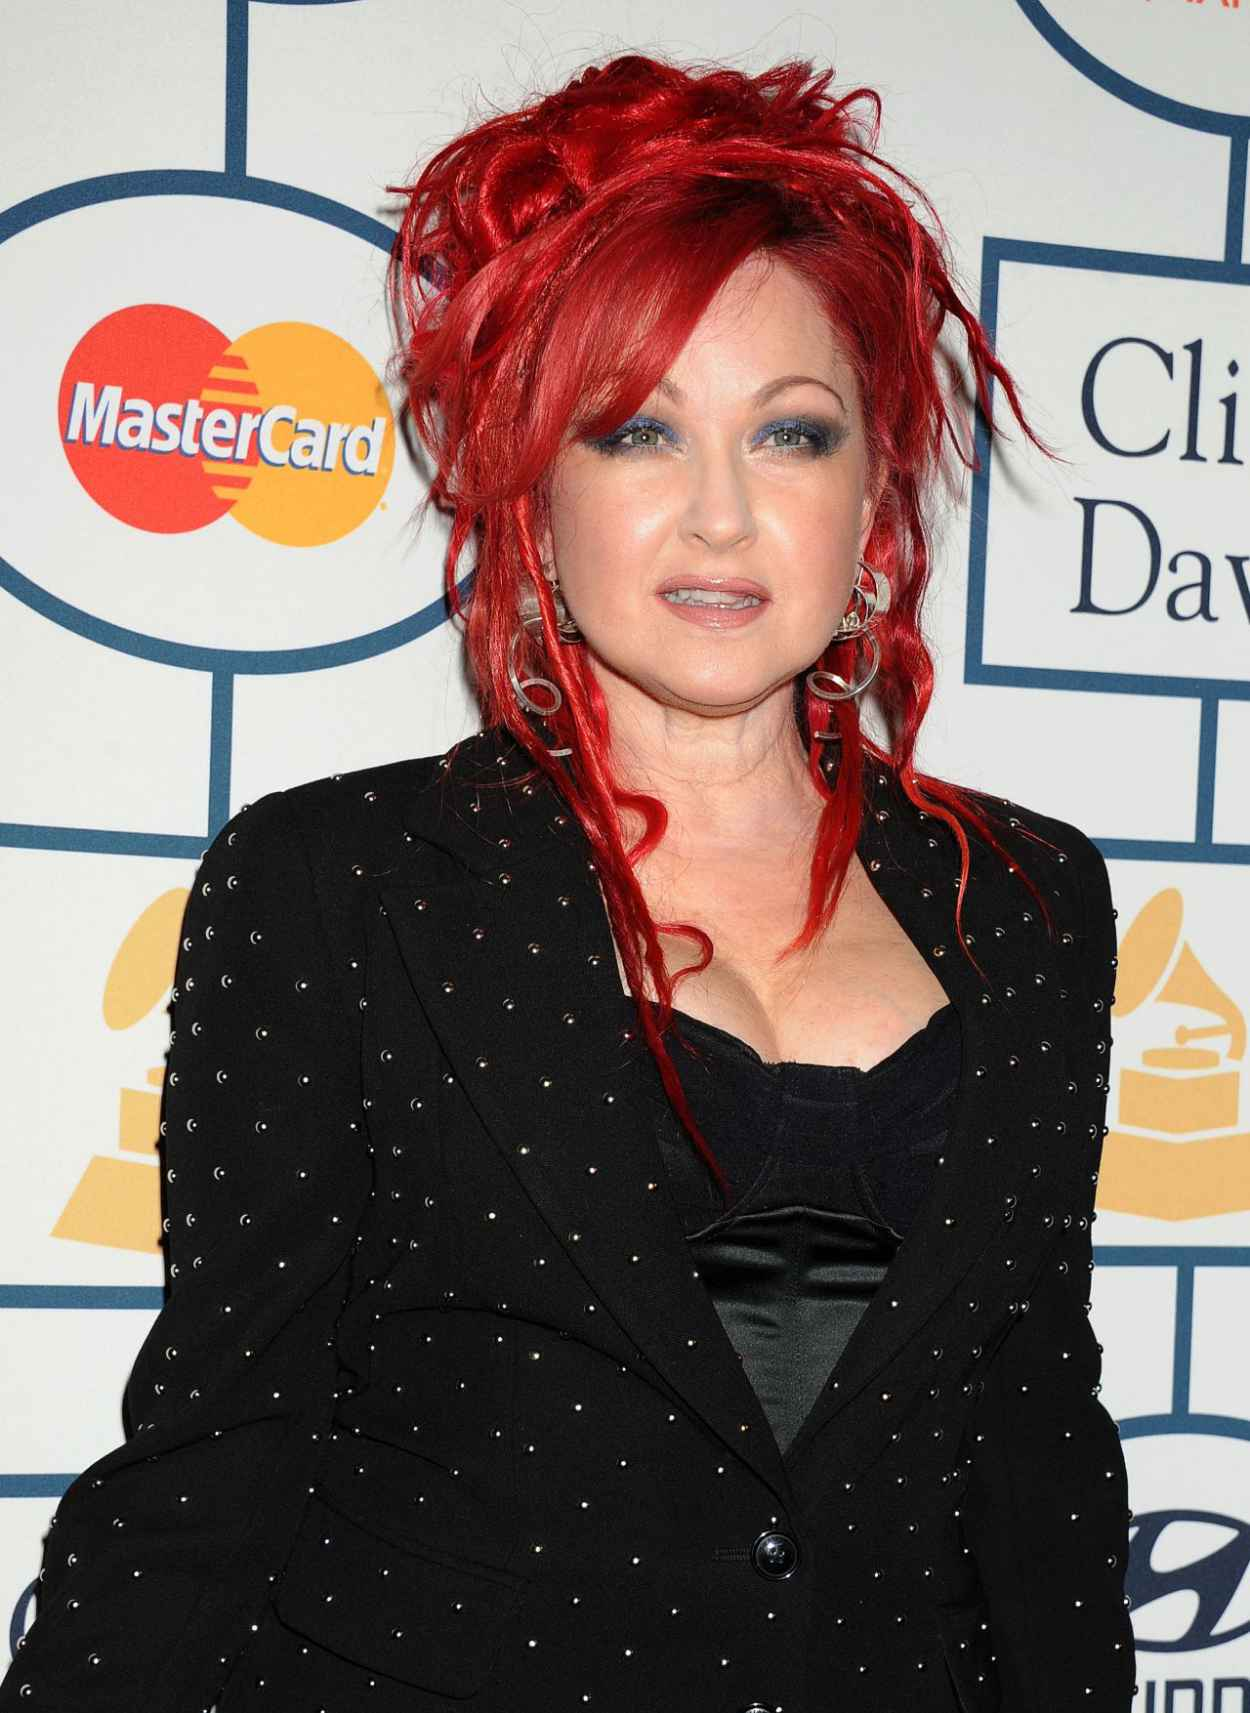 Cyndi Lauper at Pre-GRAMMY Gala in Los Angeles, January 2015-1